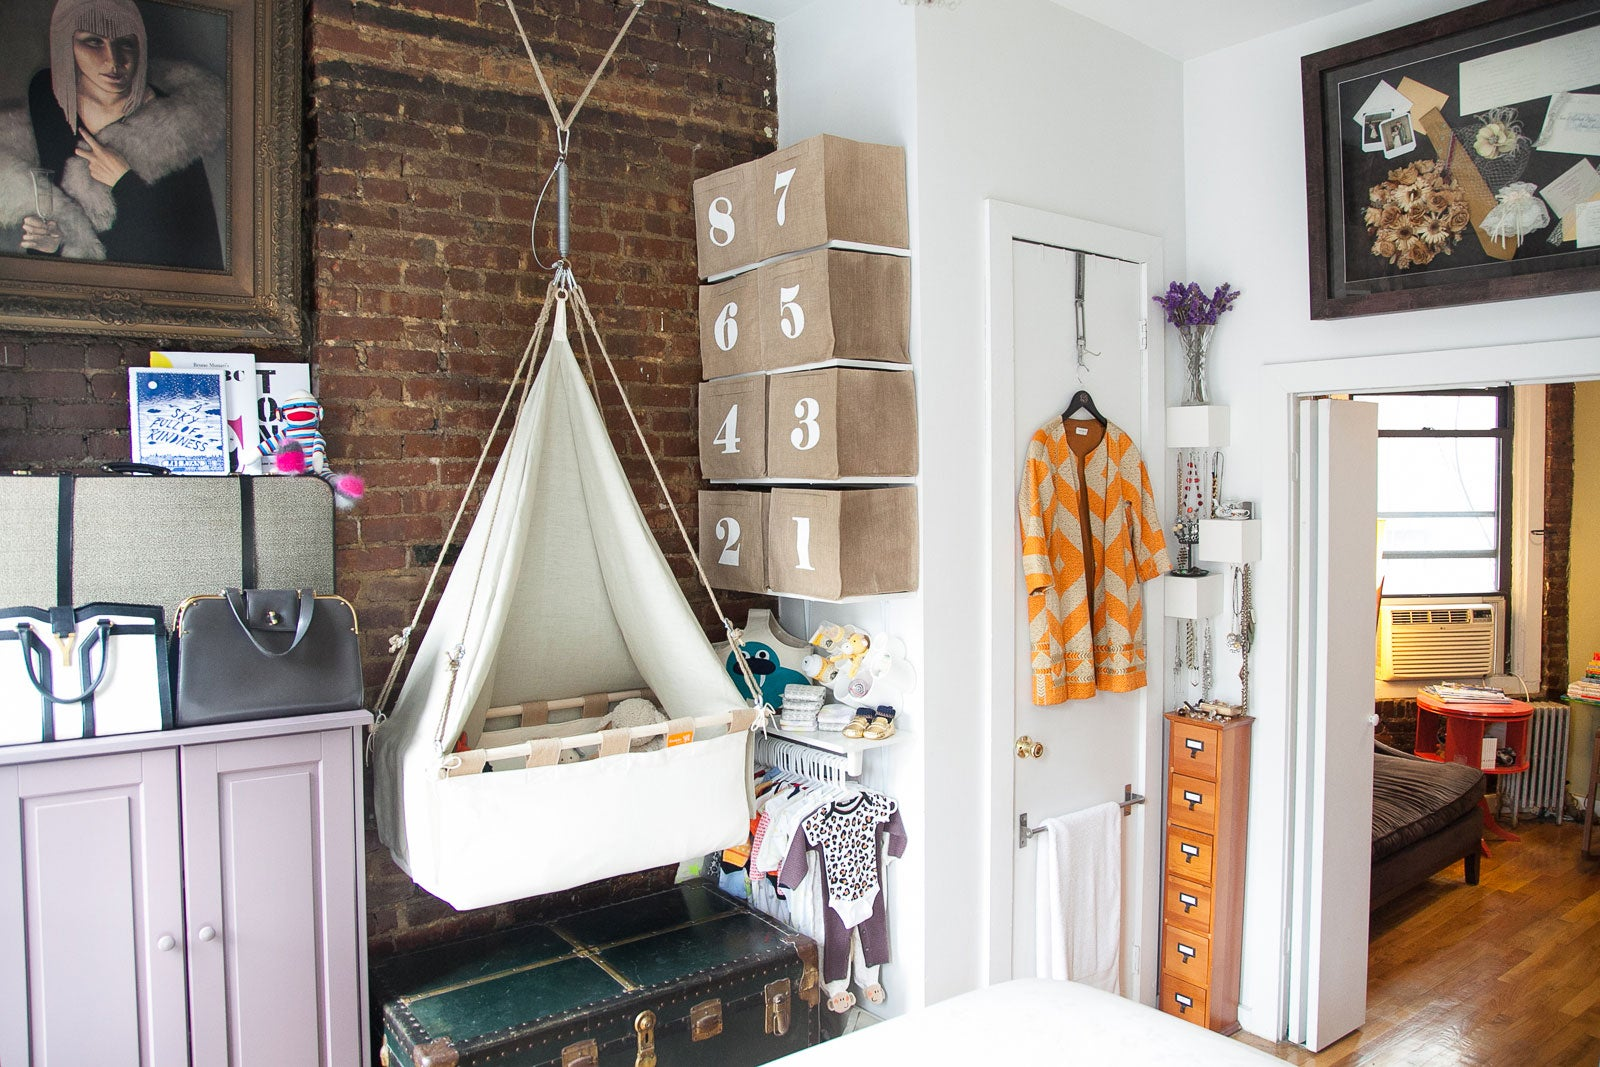 Studio Apartment With Baby baby room decor tips for small spaces - nyc